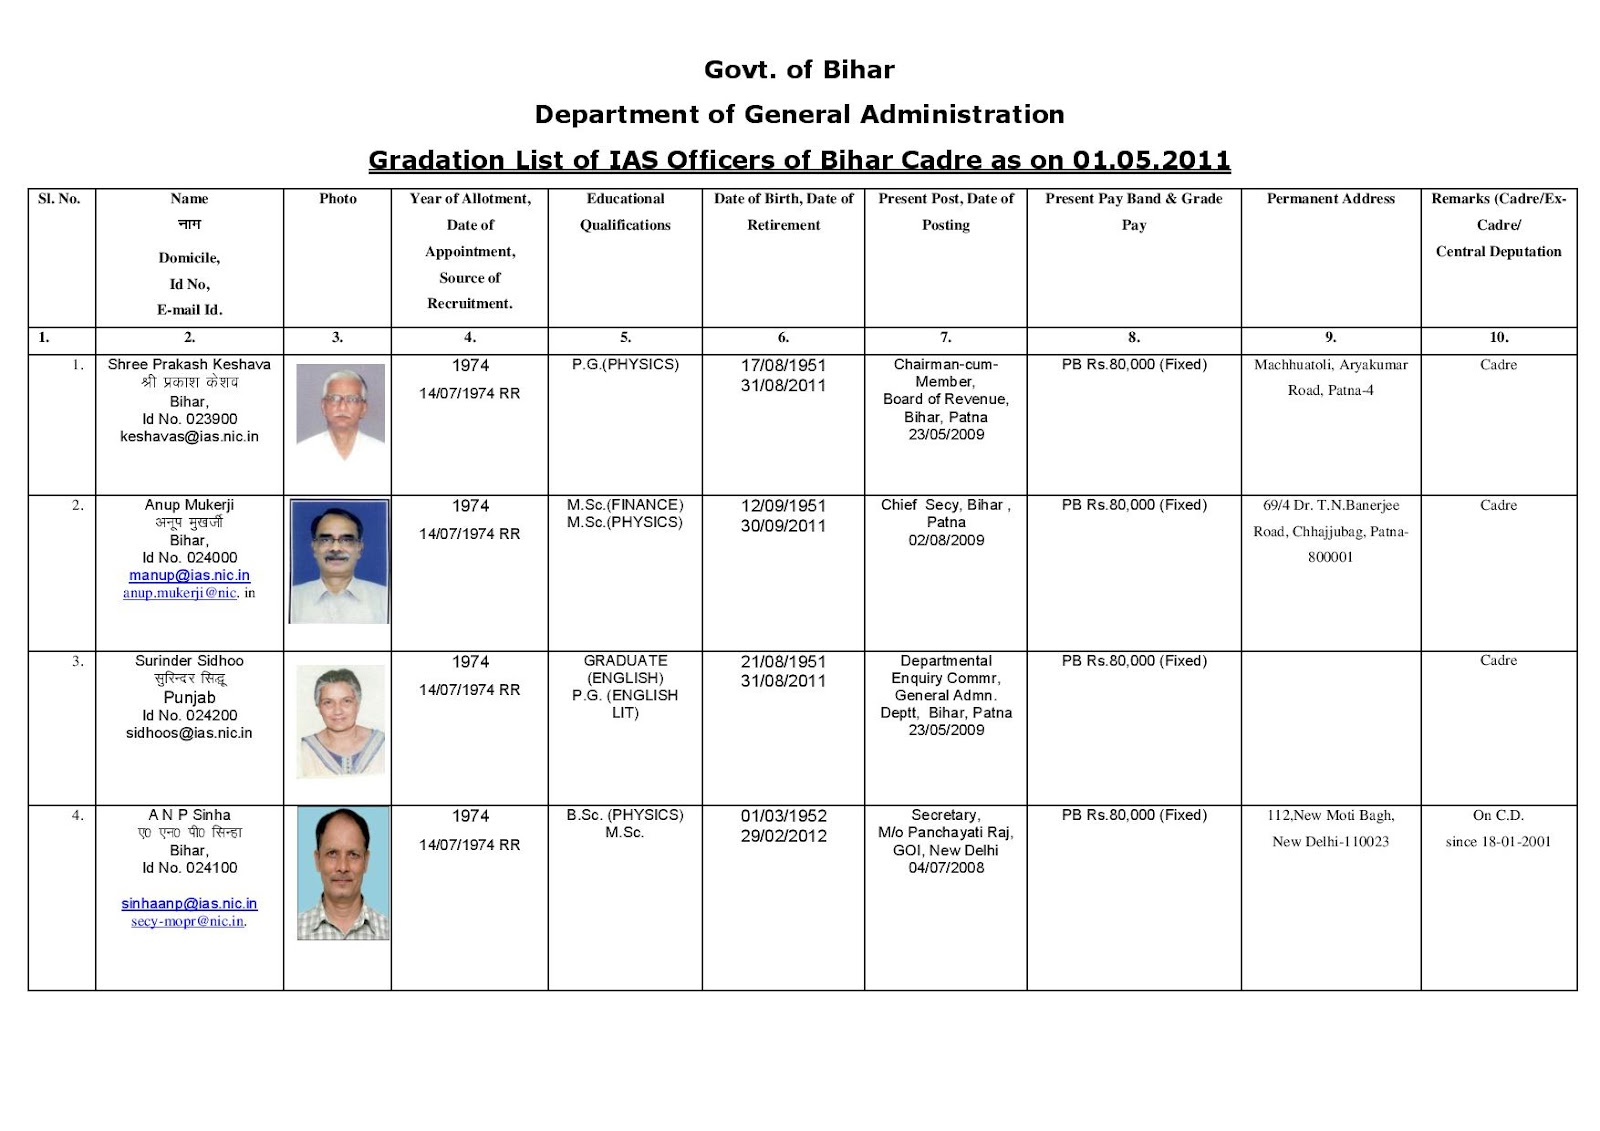 General administration of govt of bihar gradation list of ias officers of bihar cadre as on 27 08 2011